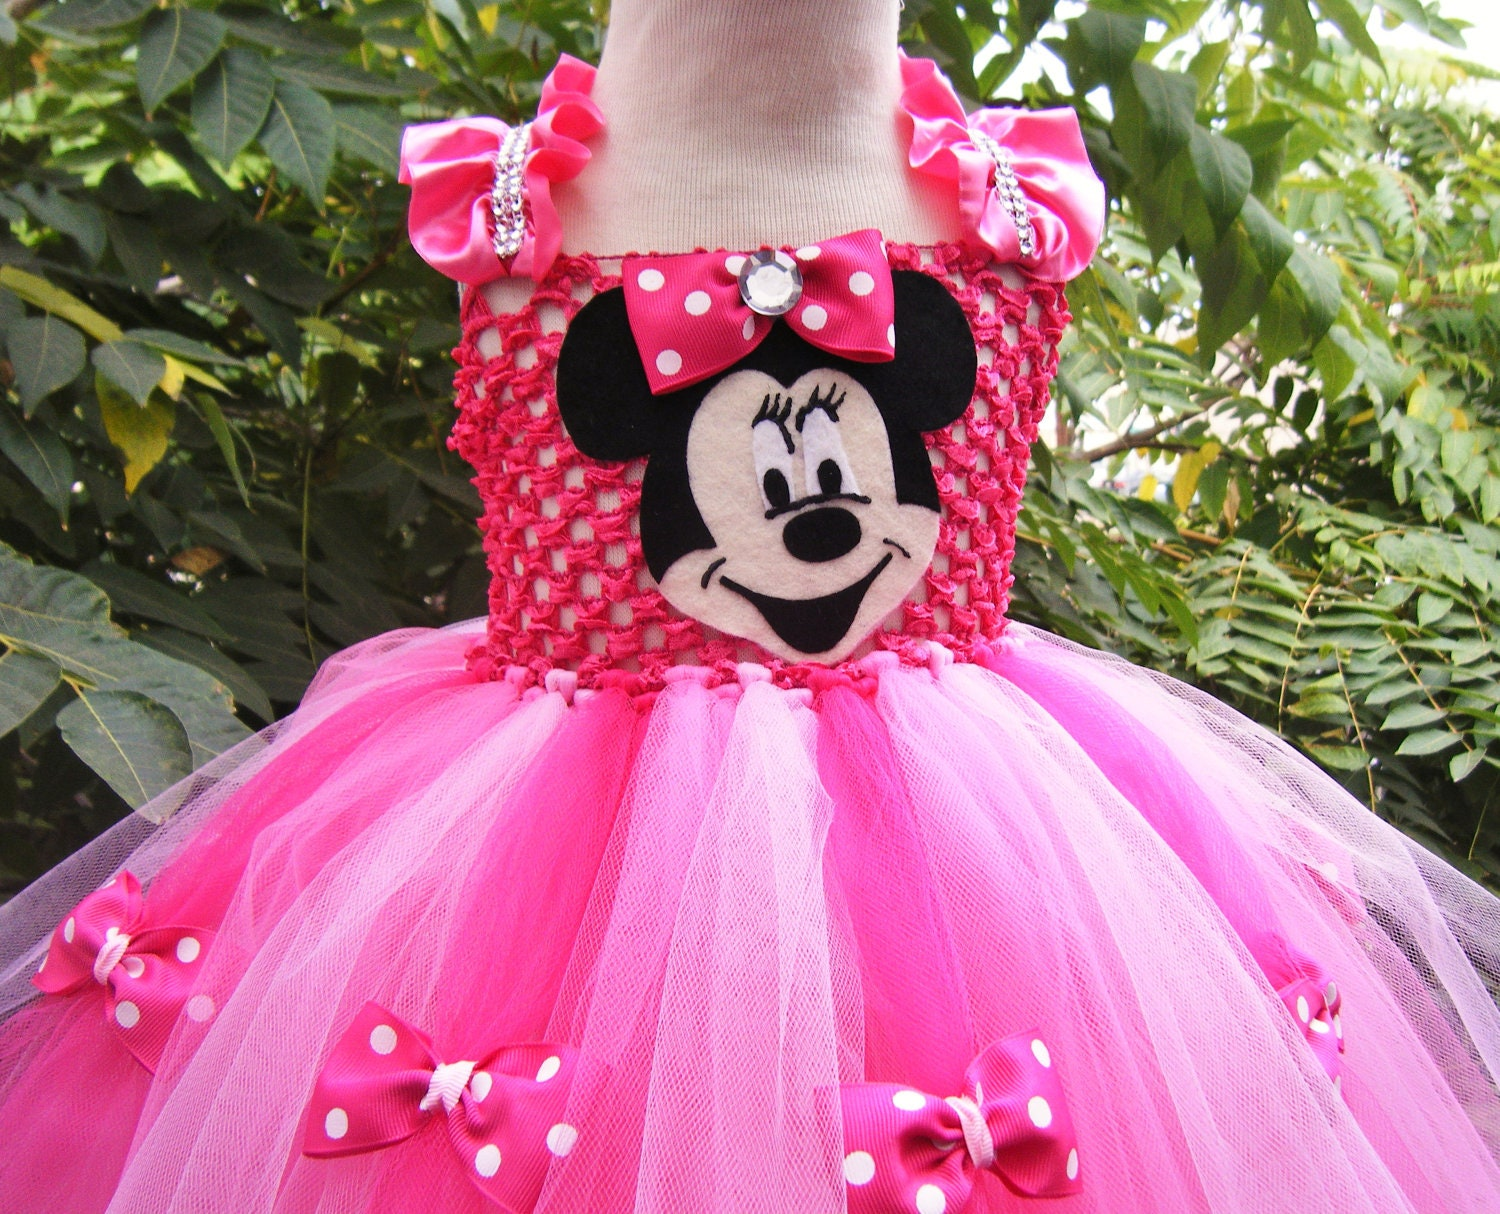 Magnificent Minnie Mouse Gown Photos - Wedding and flowers ...